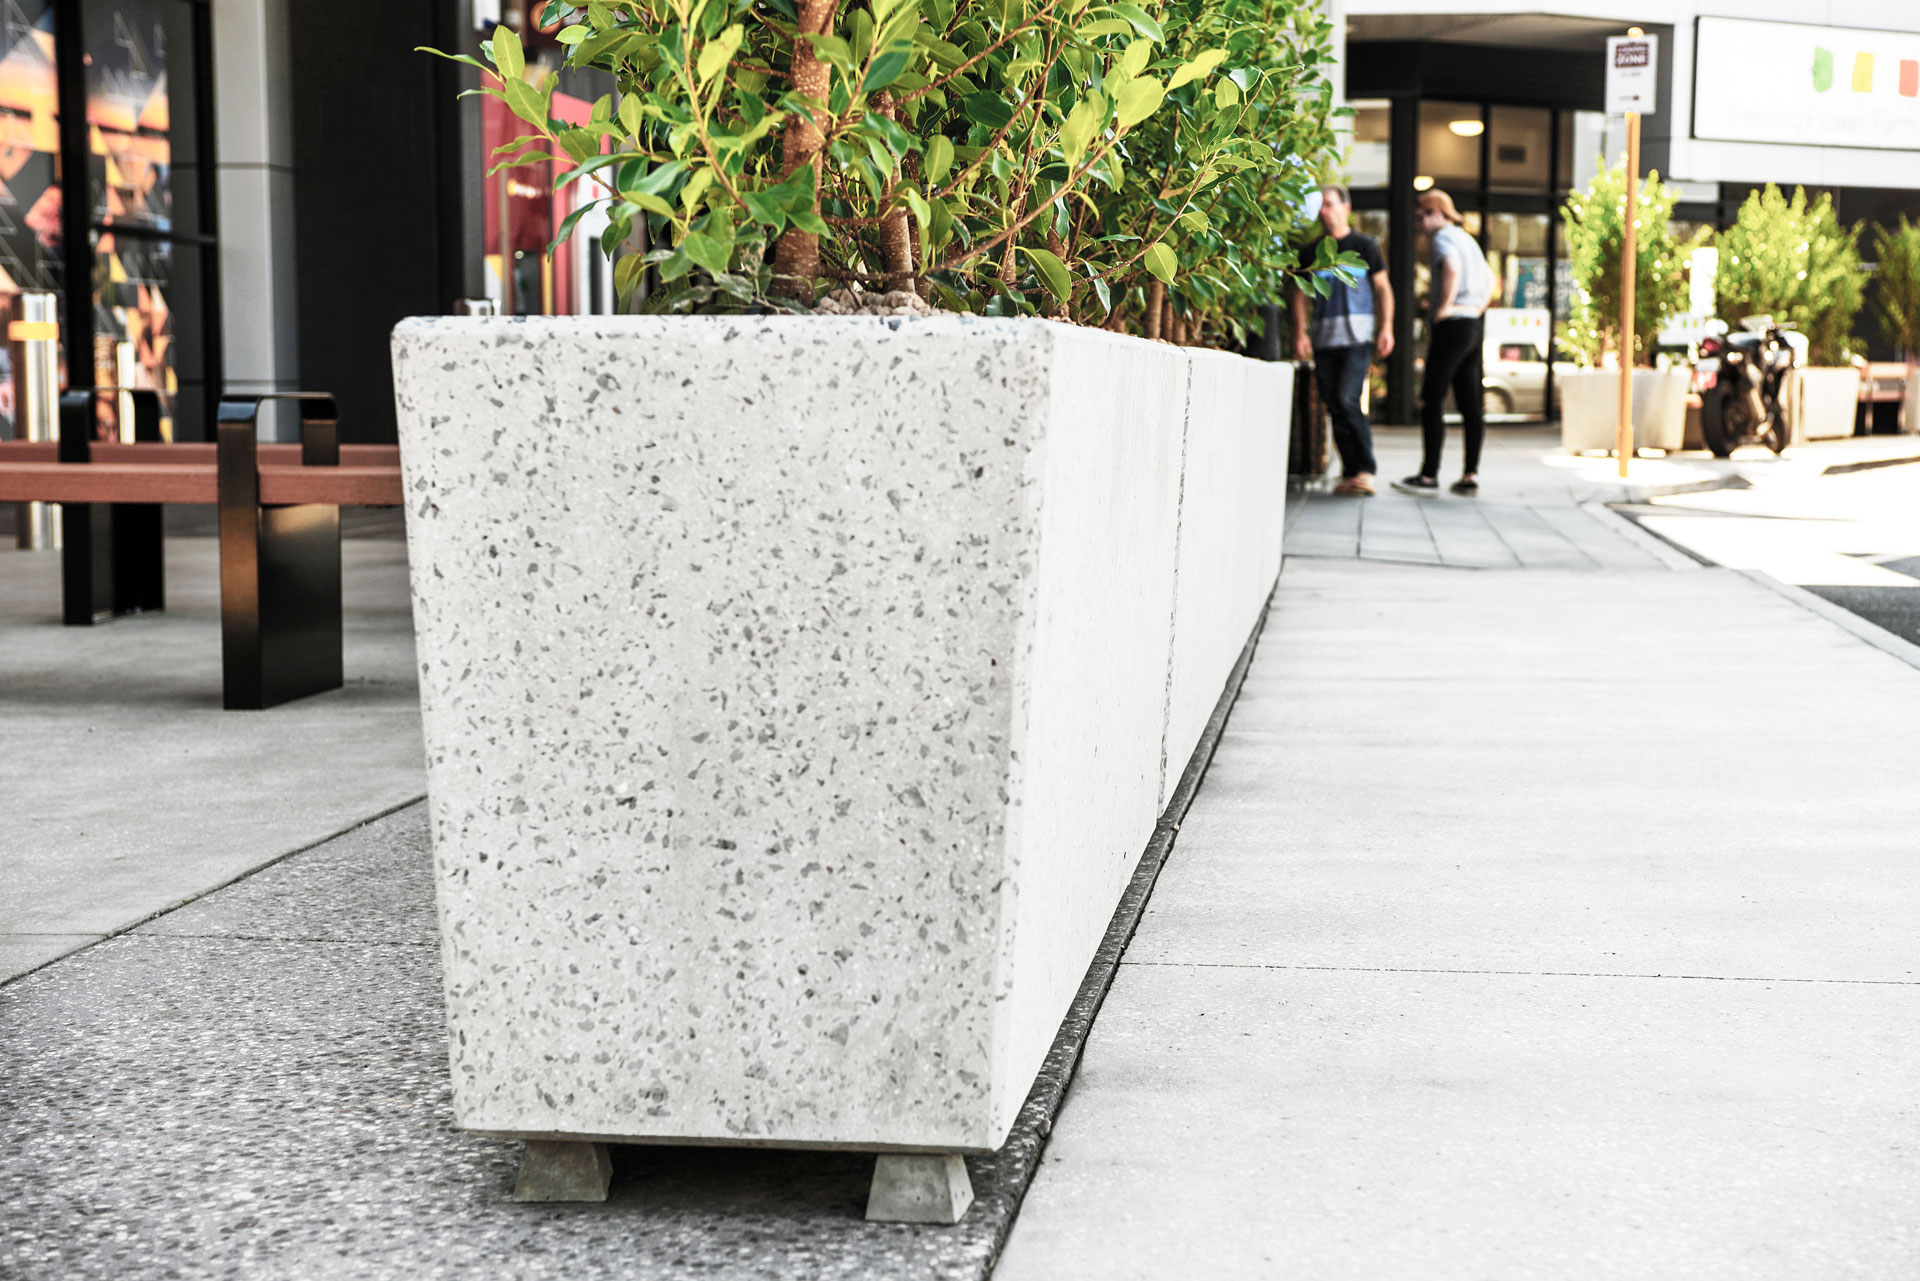 Close-up view of Anston rectangular planters